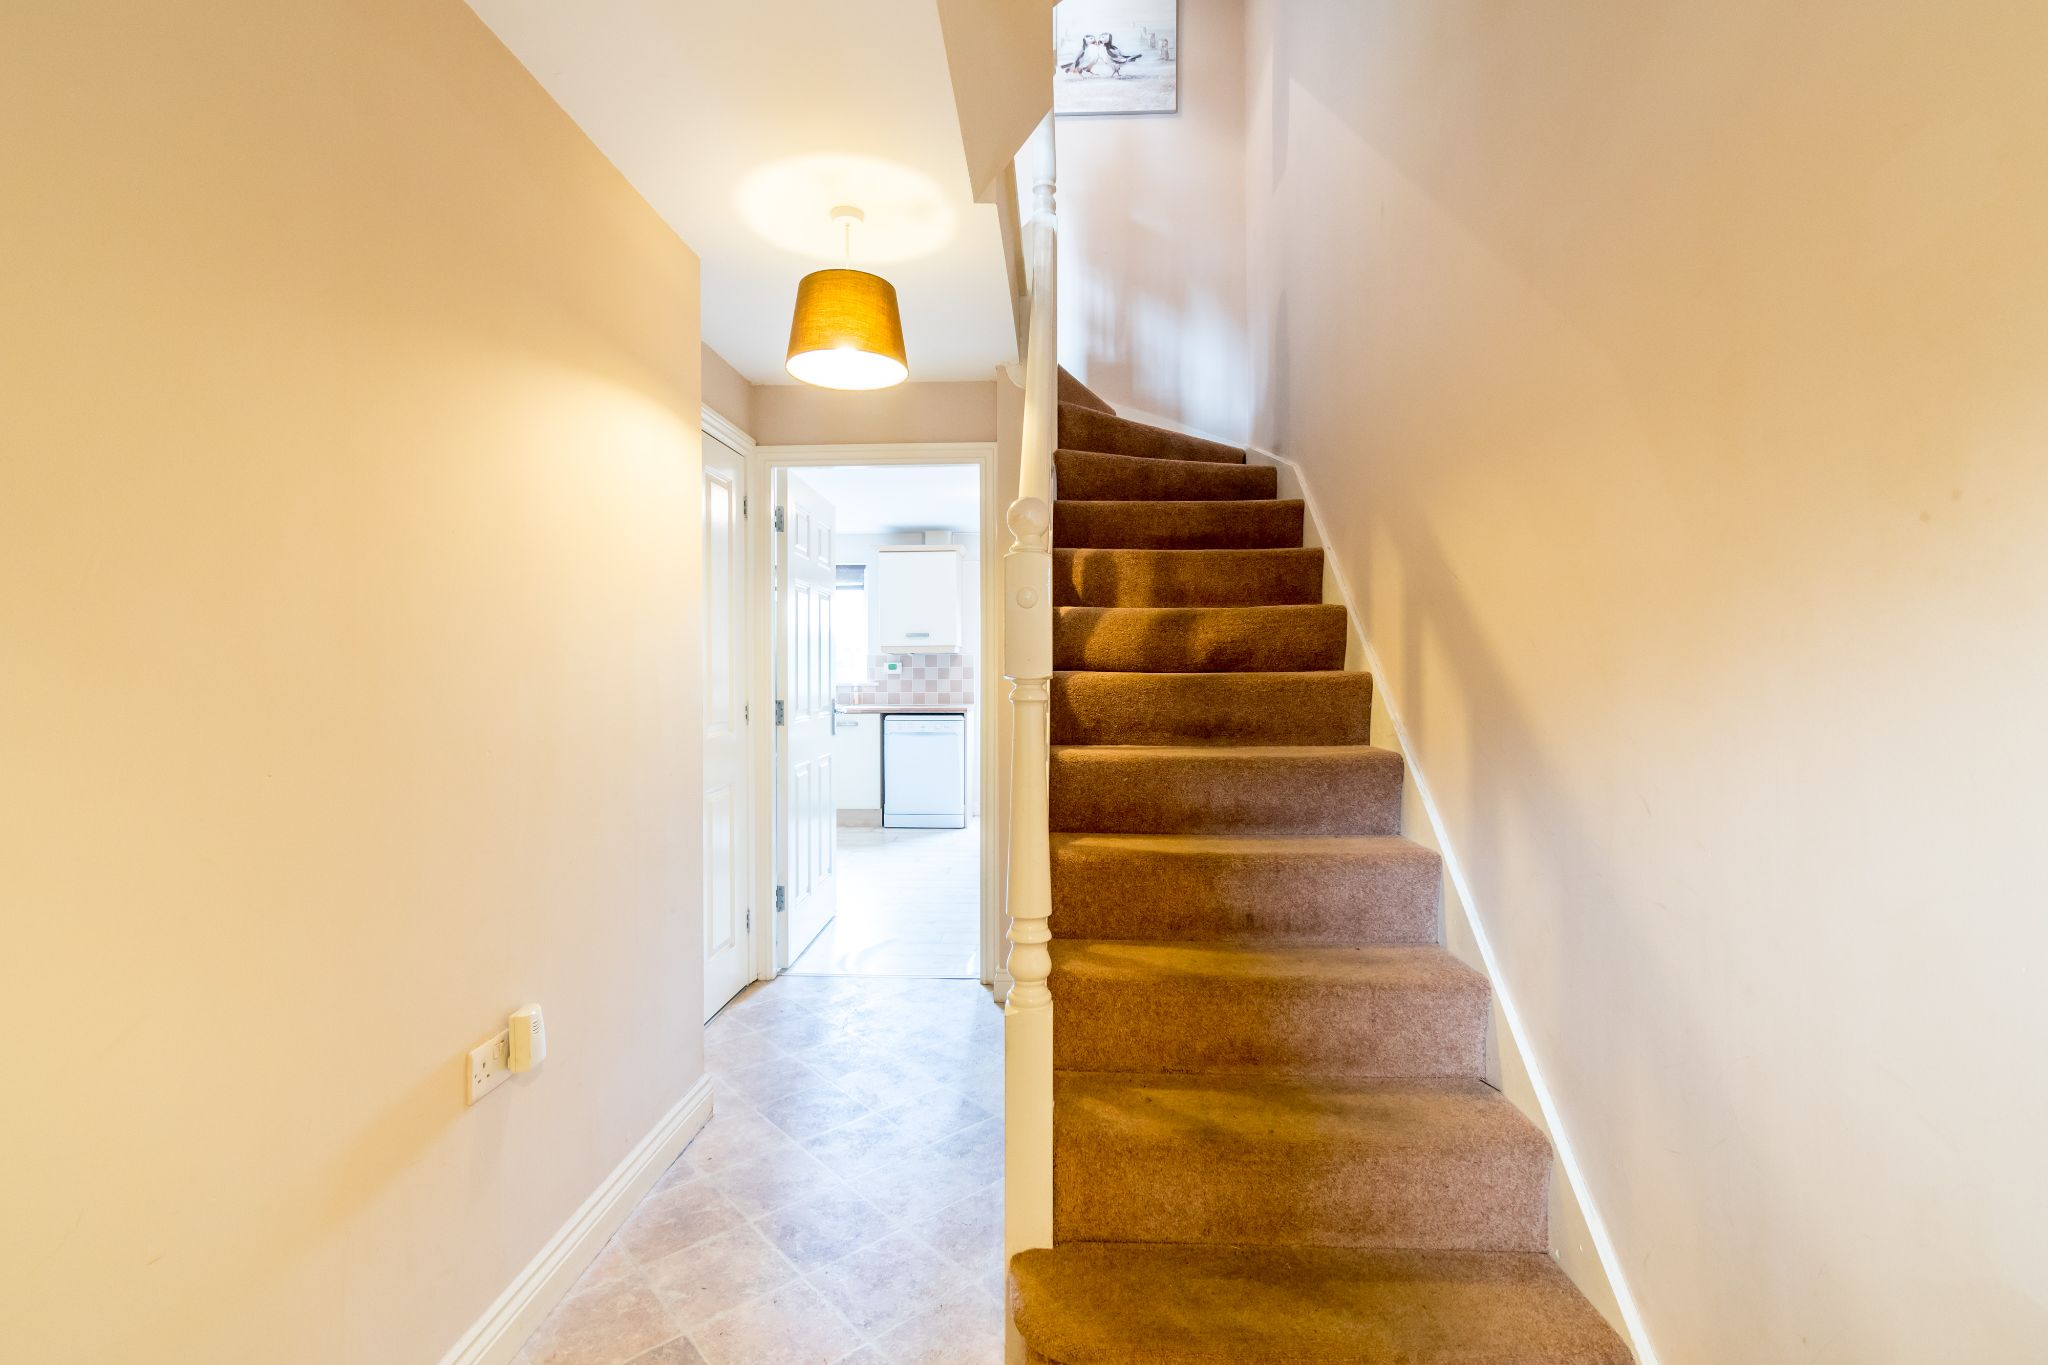 4 bedroom mid terraced house SSTC in Brighouse - Photograph 21